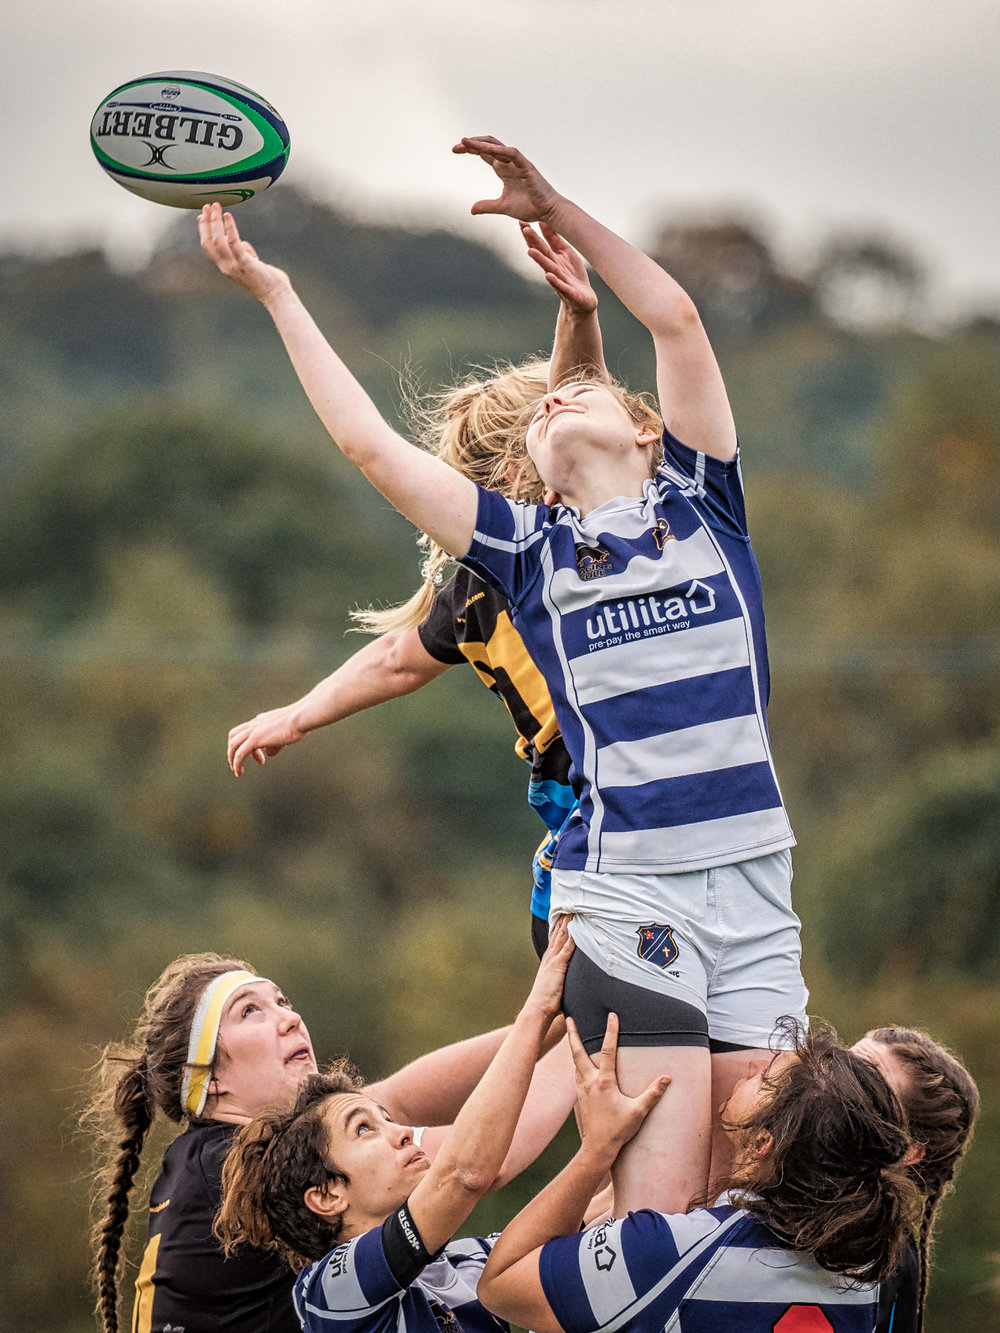 Favourite lineout shot of the weekend. Just a shame the ball was upside down!